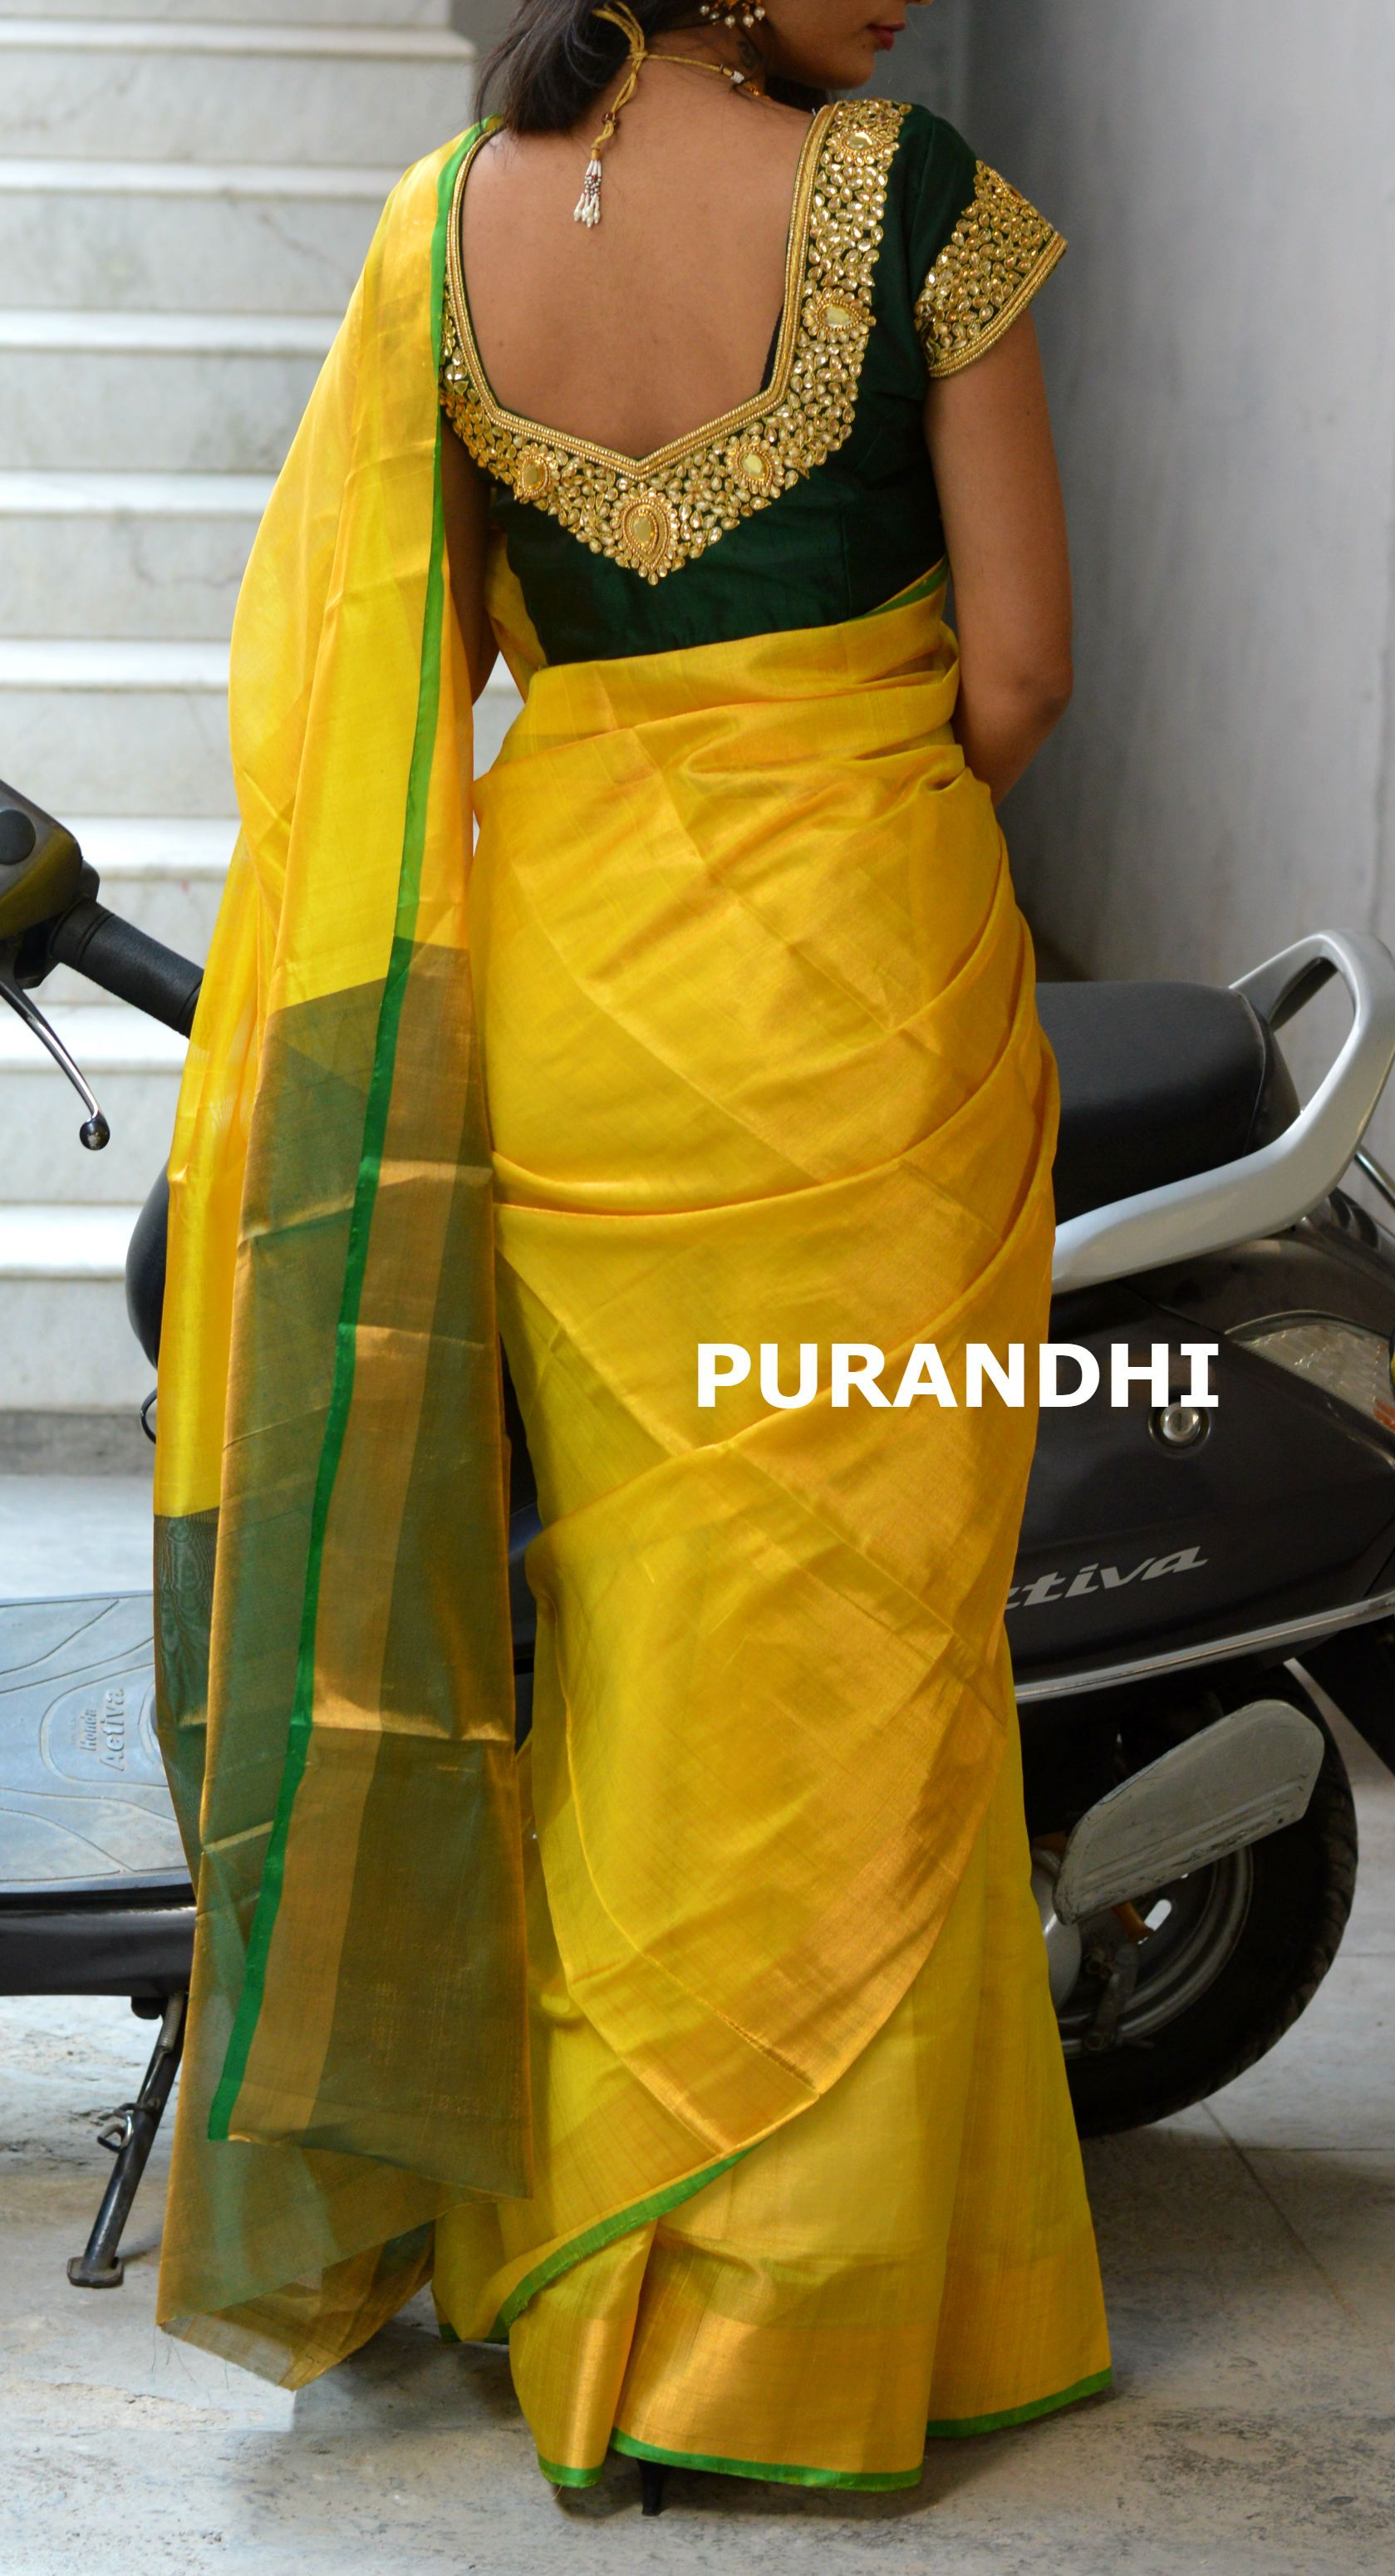 36c2c133cd Yellow and Bottle green uppada tissue saree. For more details please  contact us on whats app : 9701673187 Email : purandhistore@gmail.com